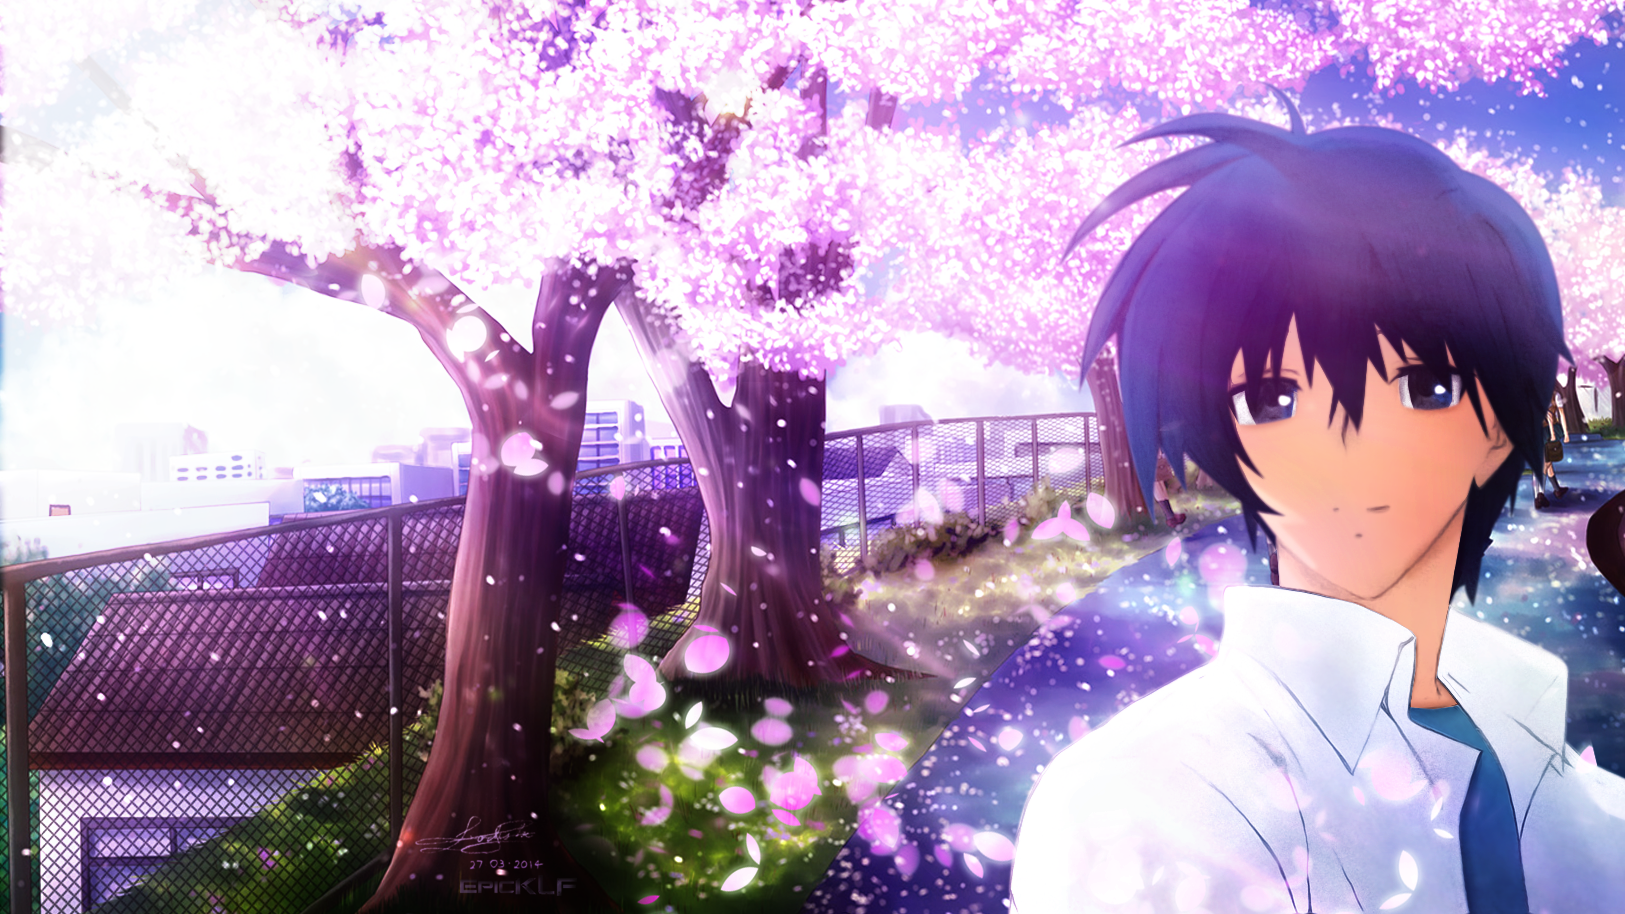 tomoya okazaki from clannad walpaper by epicklf on deviantart